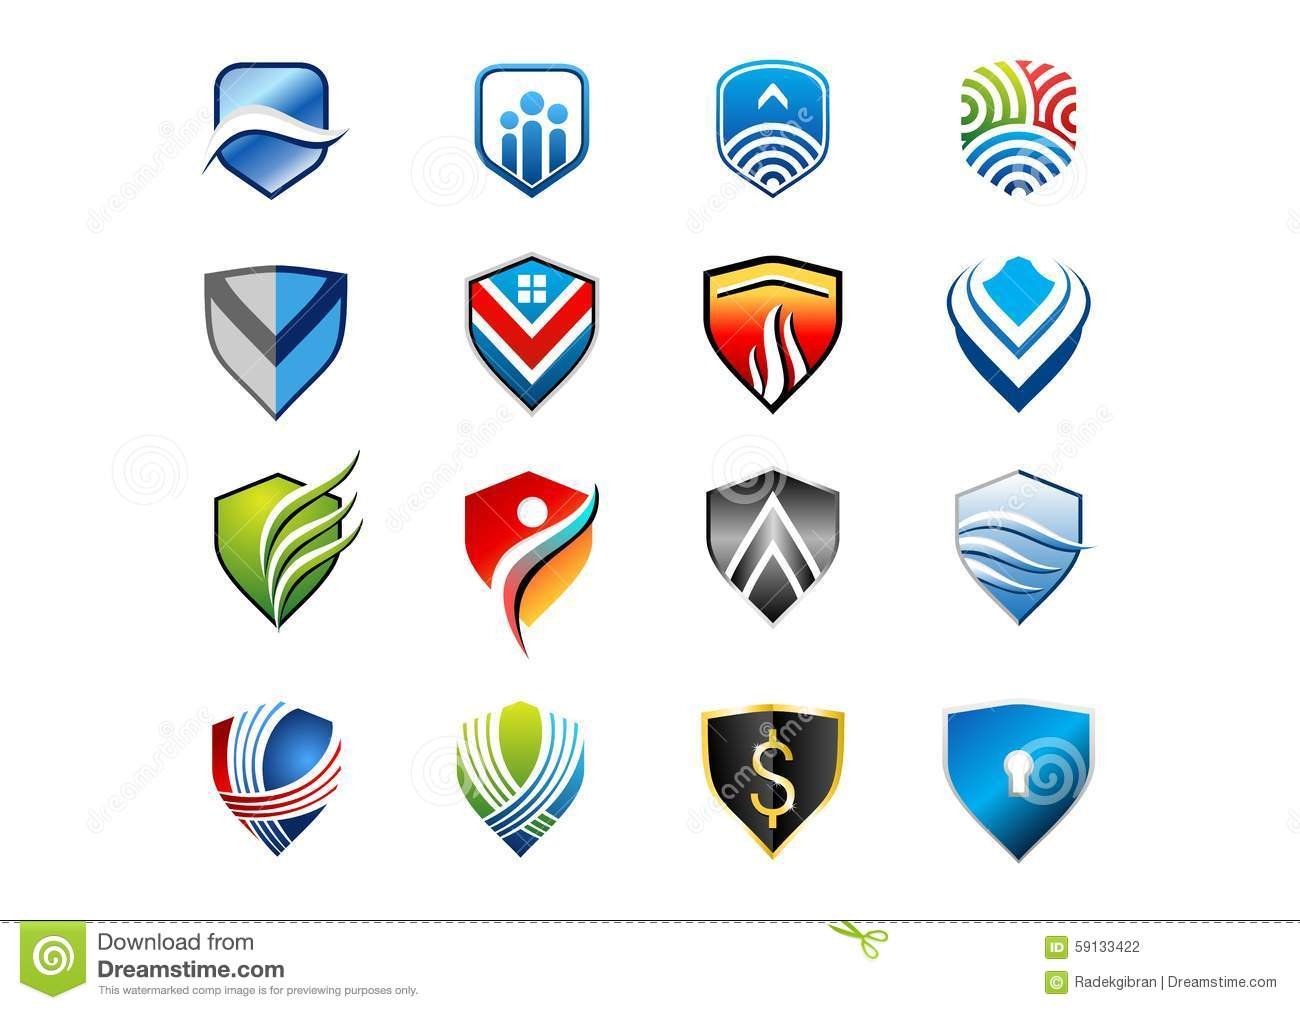 Security logo clipart sign clip art library download Security logo clipart sign - ClipartFest clip art library download